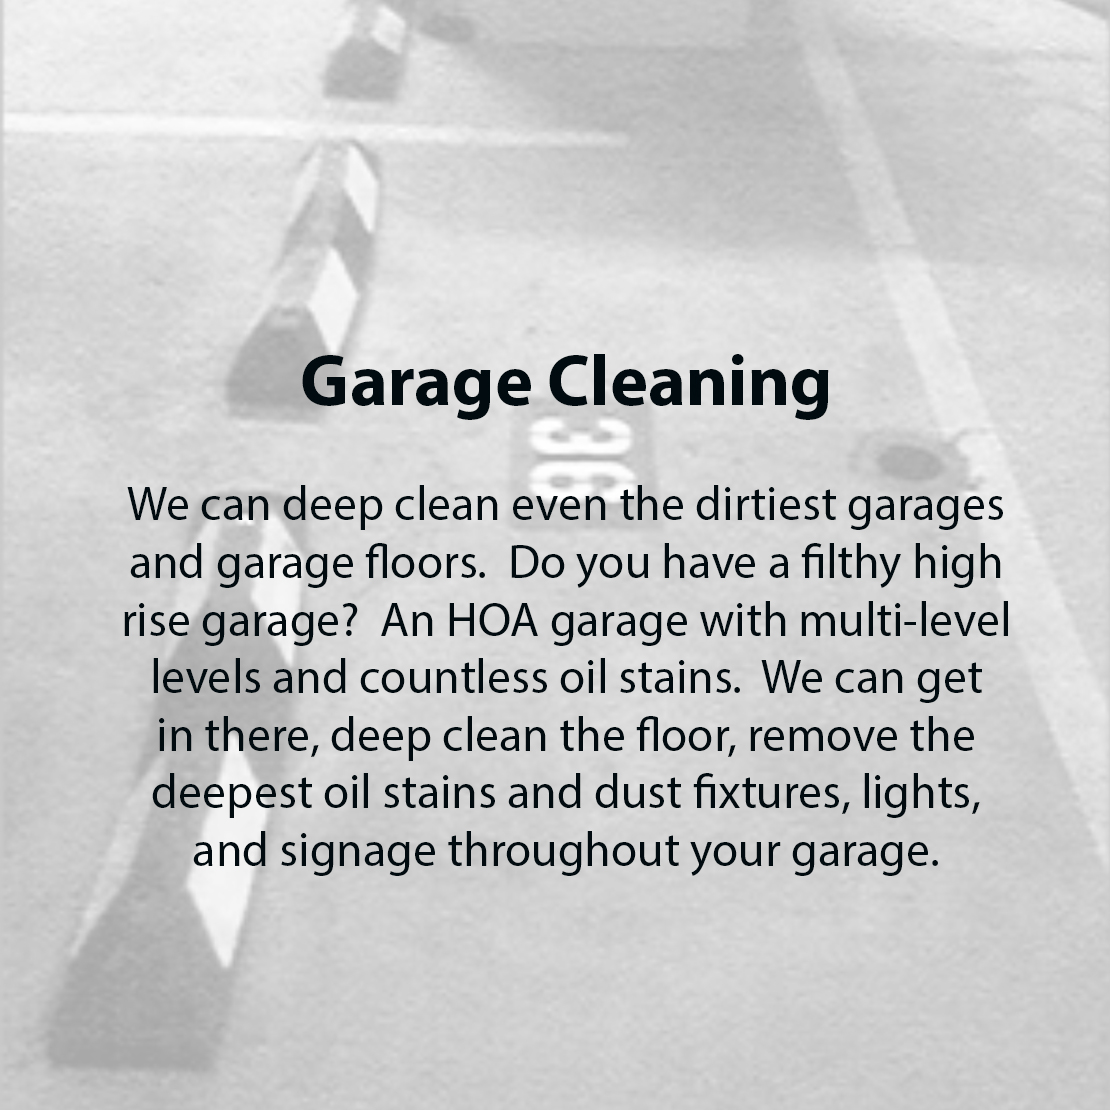 Garage-Cleaning